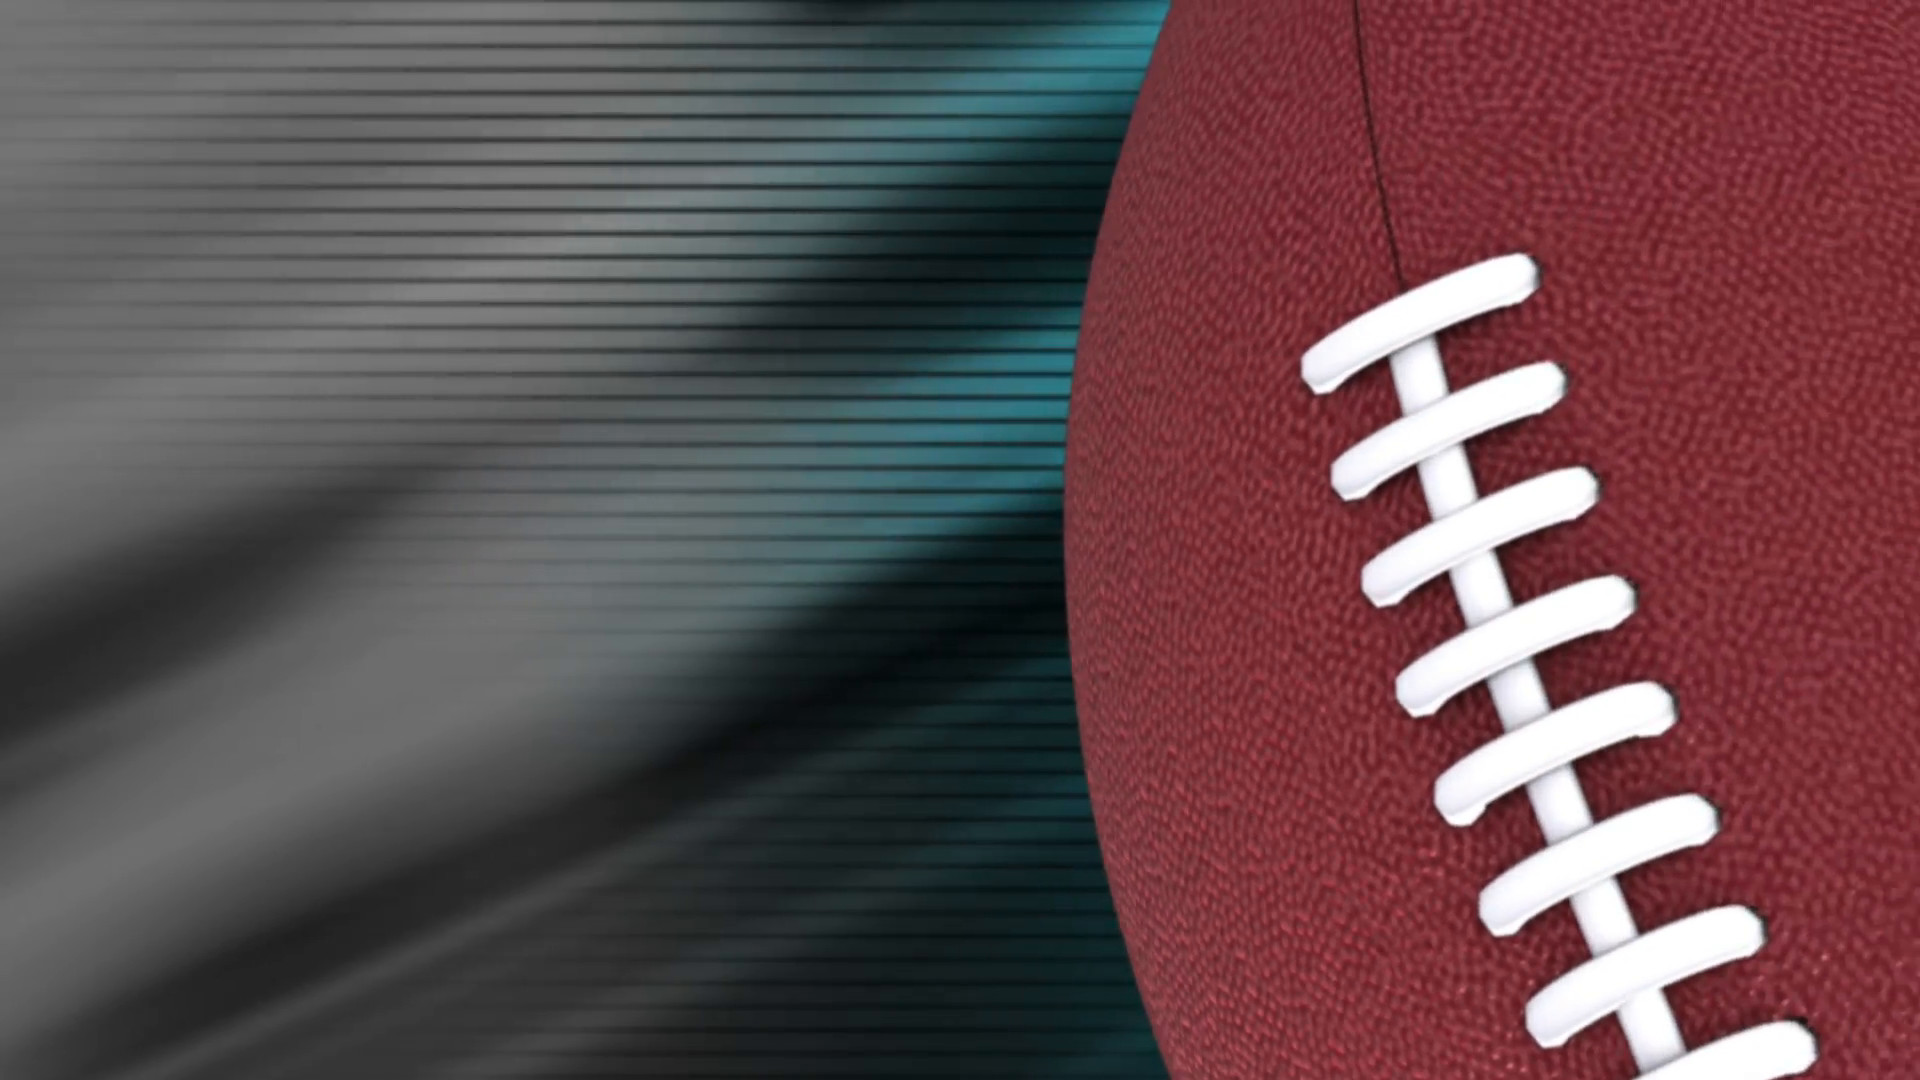 1920x1080 Football backgrounds blue gray loop Motion Background - Storyblocks Video